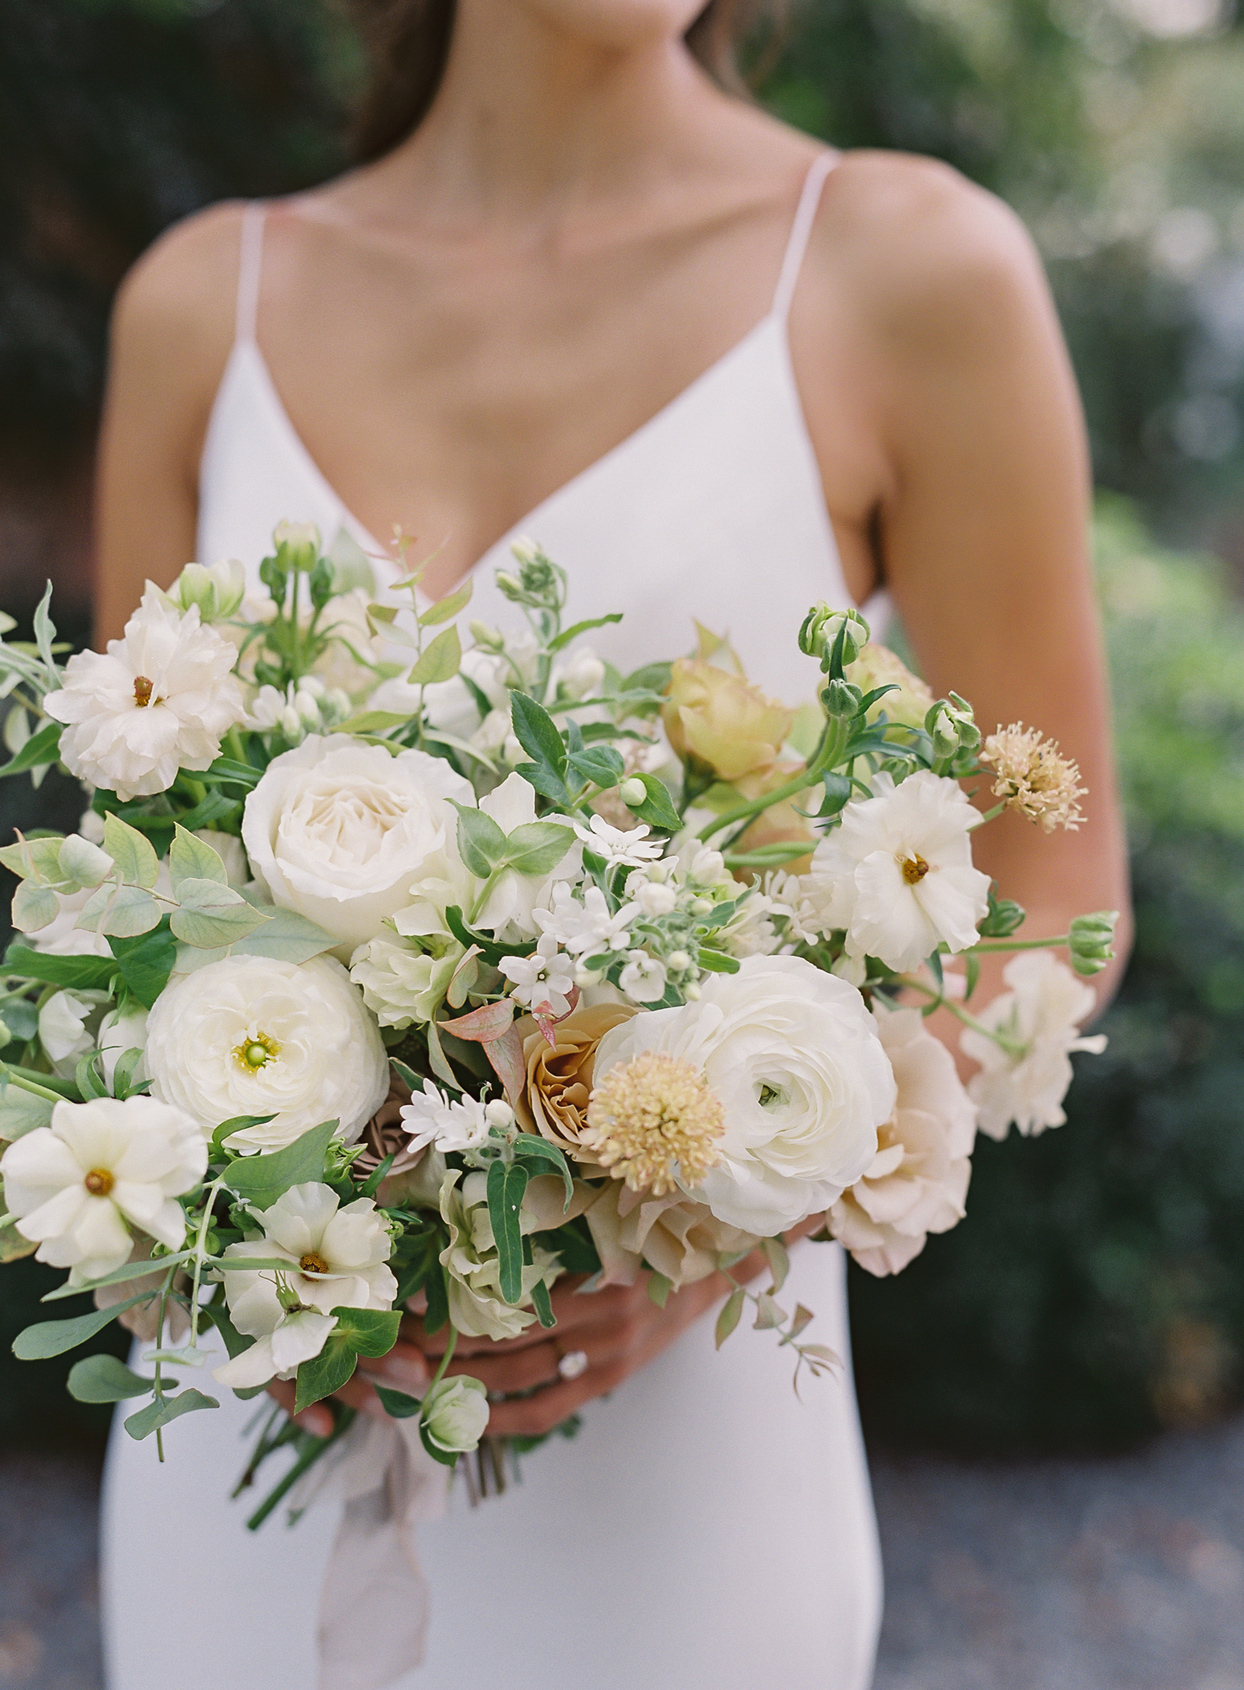 Bride's bouquet with Butterfly ranunculus, scabious, hydrangeas, strawflowers, hellebores, lisianthus, and garden roses